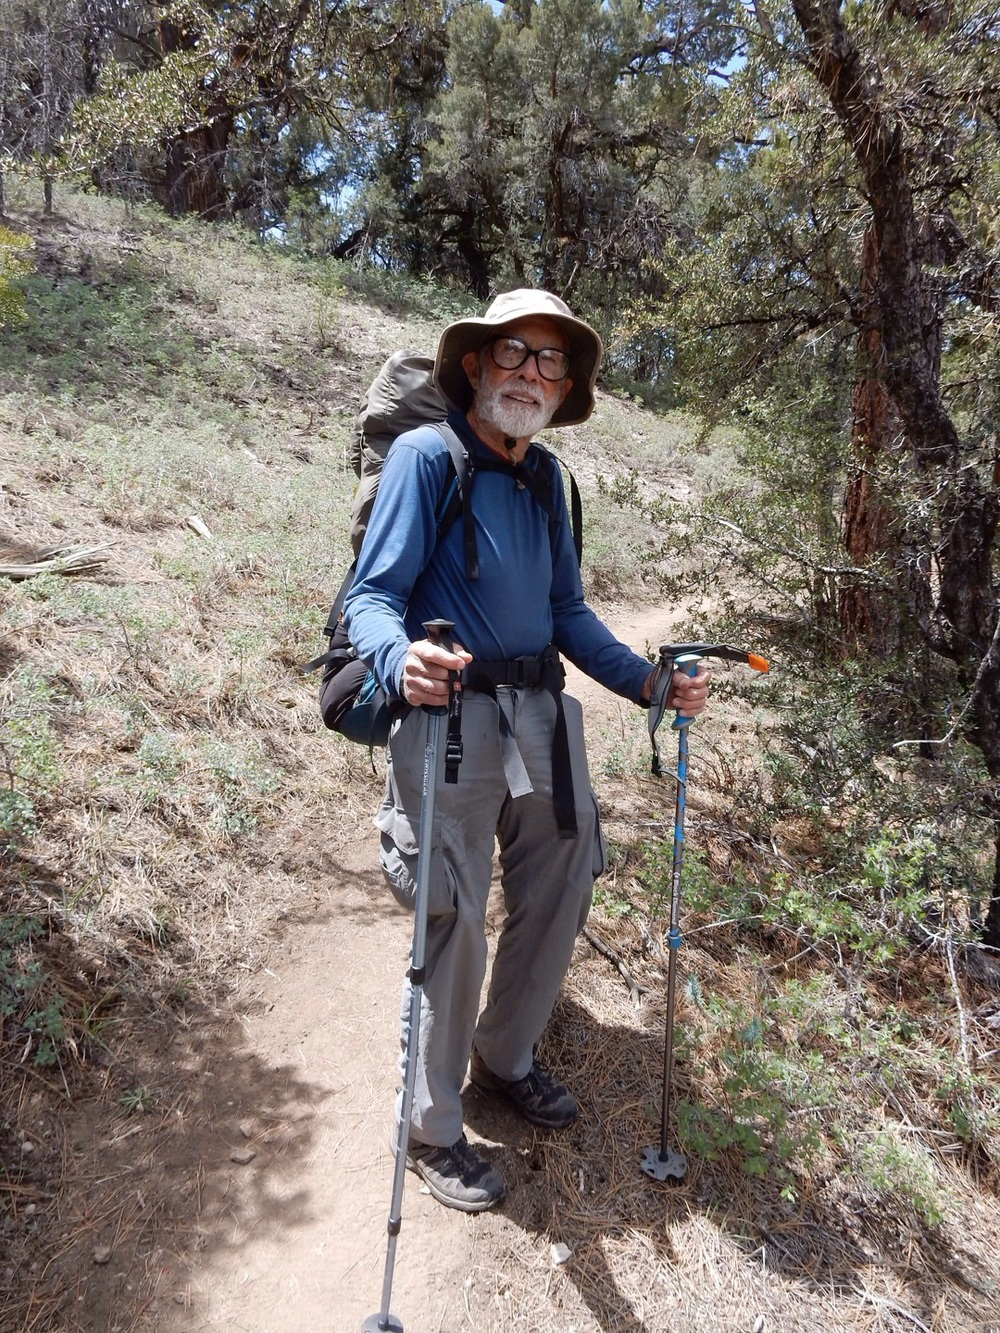 He thru hiked the Appalachian Trail at the tender age of 70.